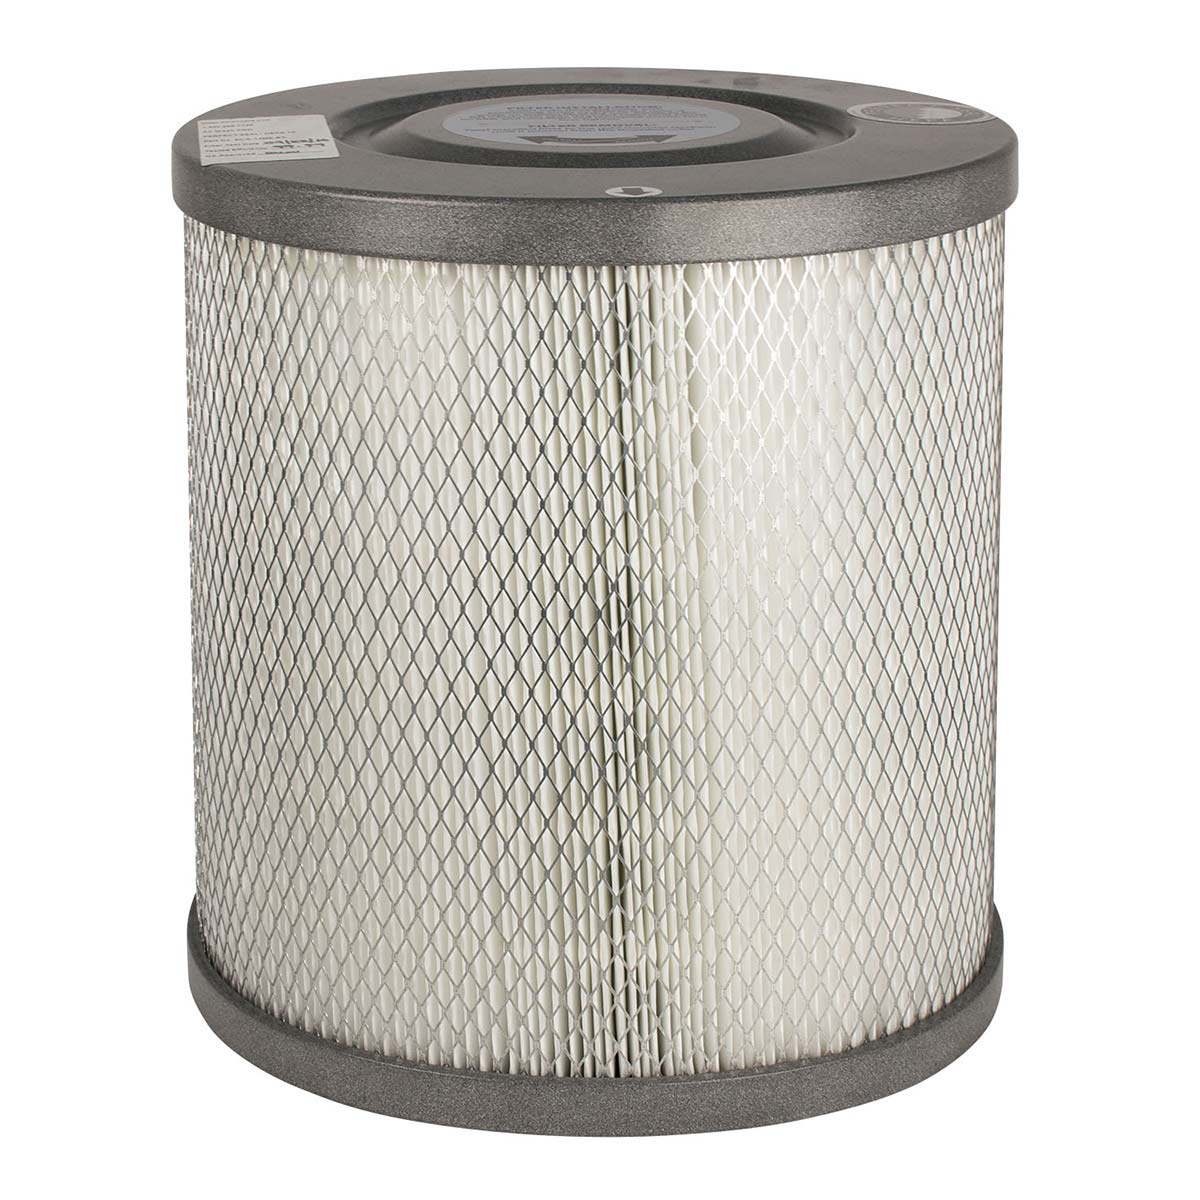 3rd Stage HEPA Filter Cartridge - Perfect Seal - NorAir 800 Air Machine